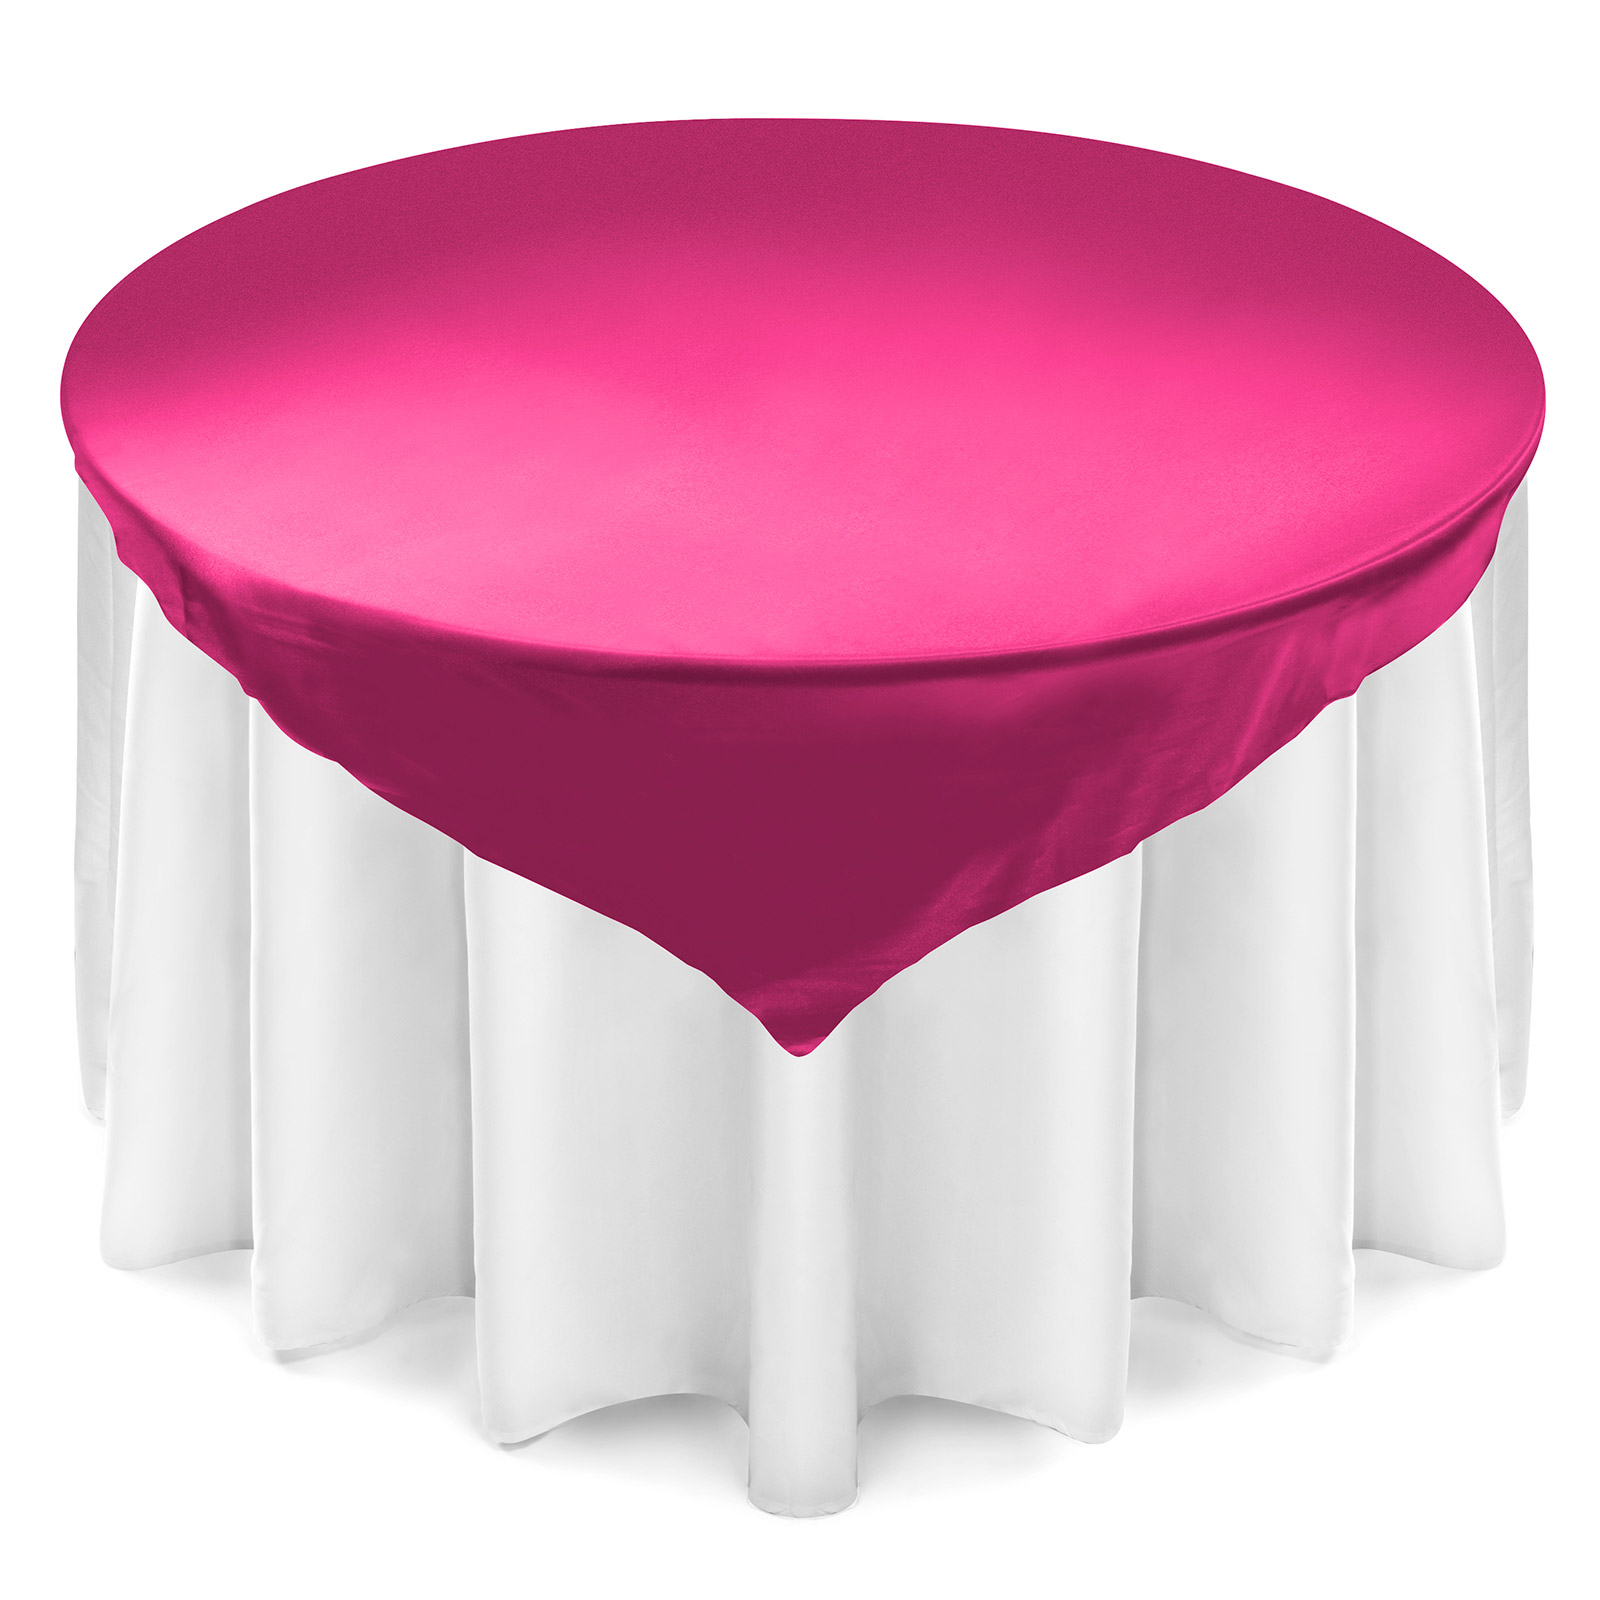 Lann's Linens 72 inch Square Satin Tablecloth Overlay - Wedding Banquet Party Decoration - Fuchsia